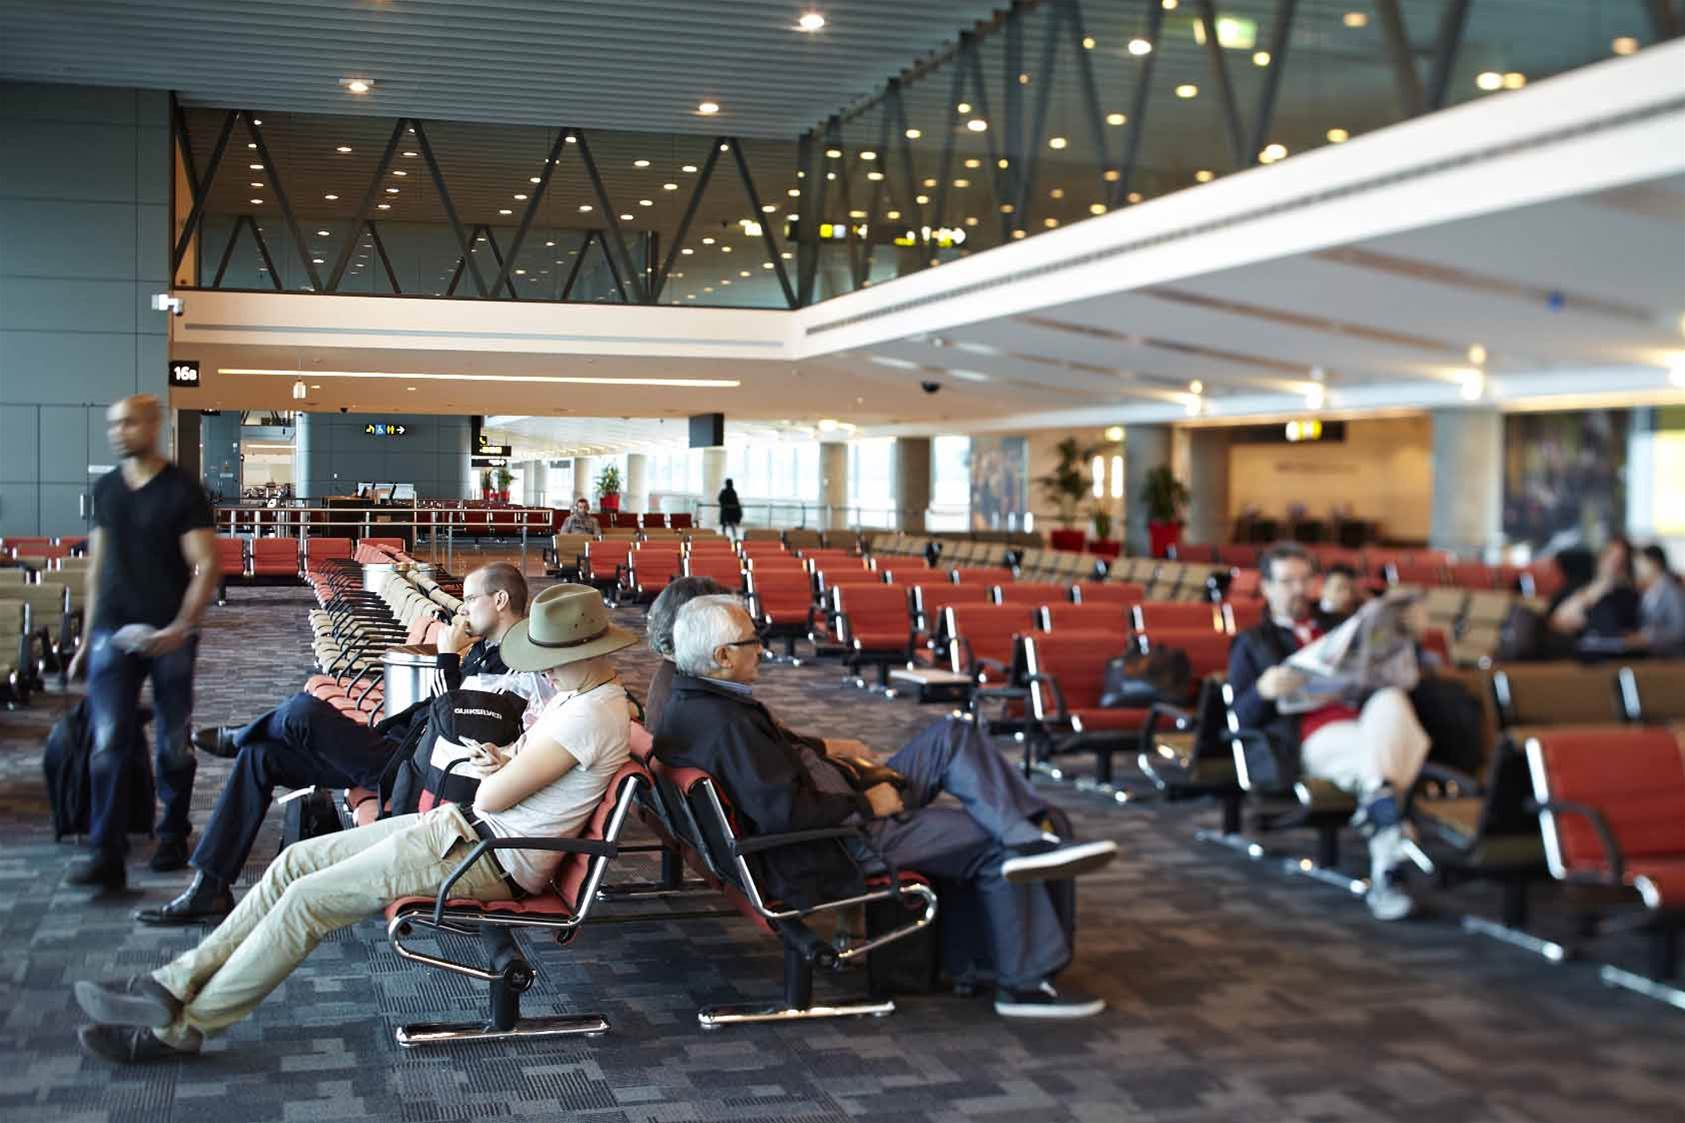 Network outage delays flights out of Melbourne Airport